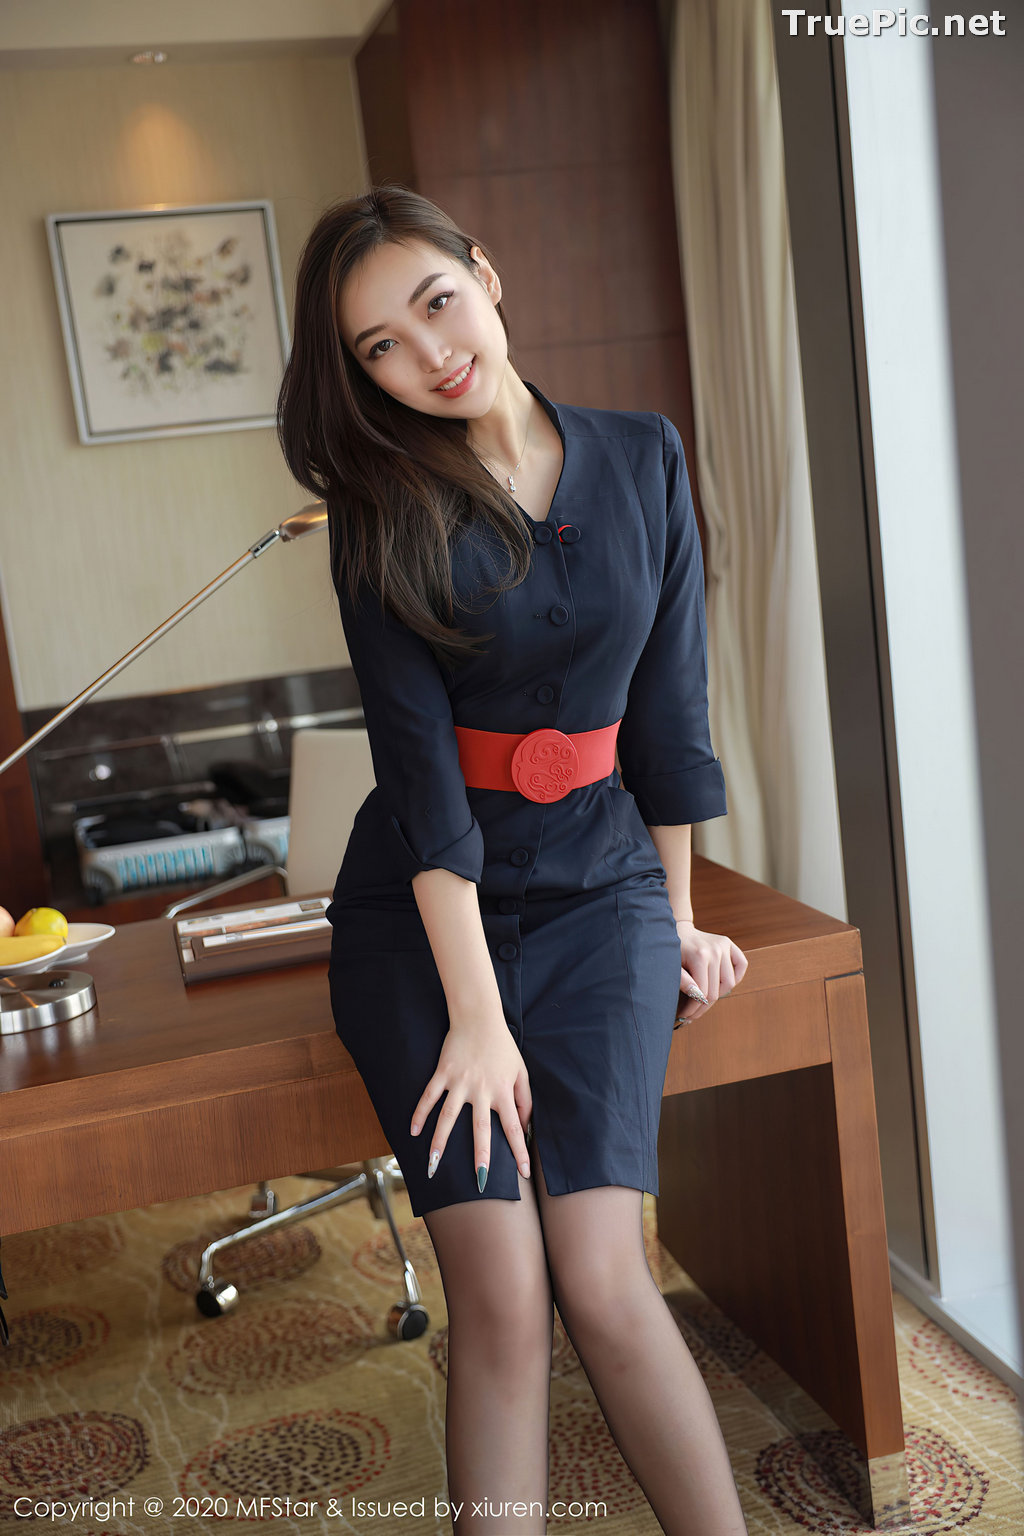 Image MFStar Vol.404 – Chinese Model – Zheng Ying Shan (郑颖姗) – Sexy Office Girl - TruePic.net - Picture-5